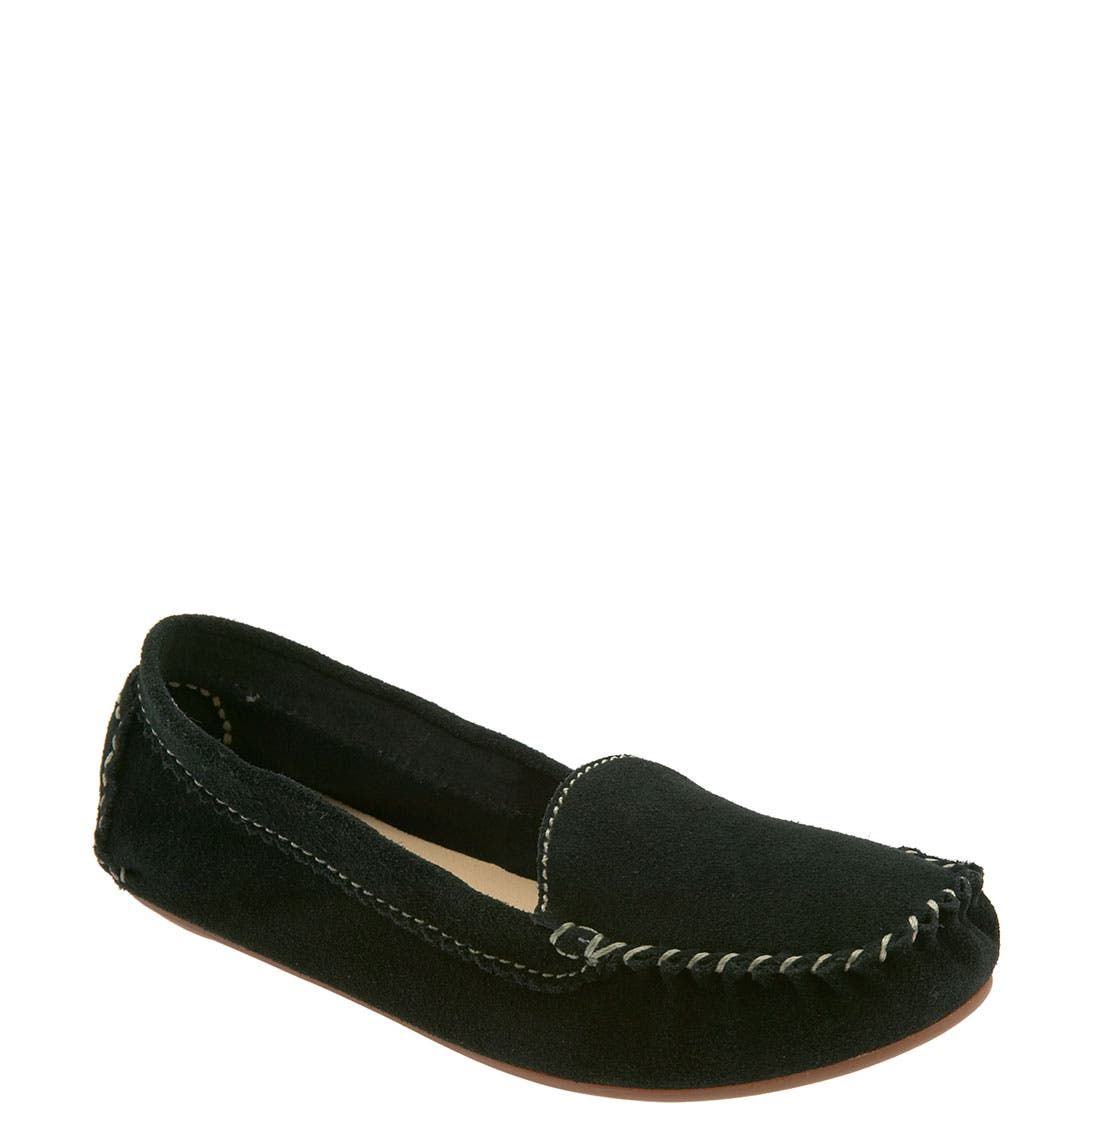 STEVEN BY STEVE MADDEN,                             'Teepea' Moccasin,                             Main thumbnail 1, color,                             006